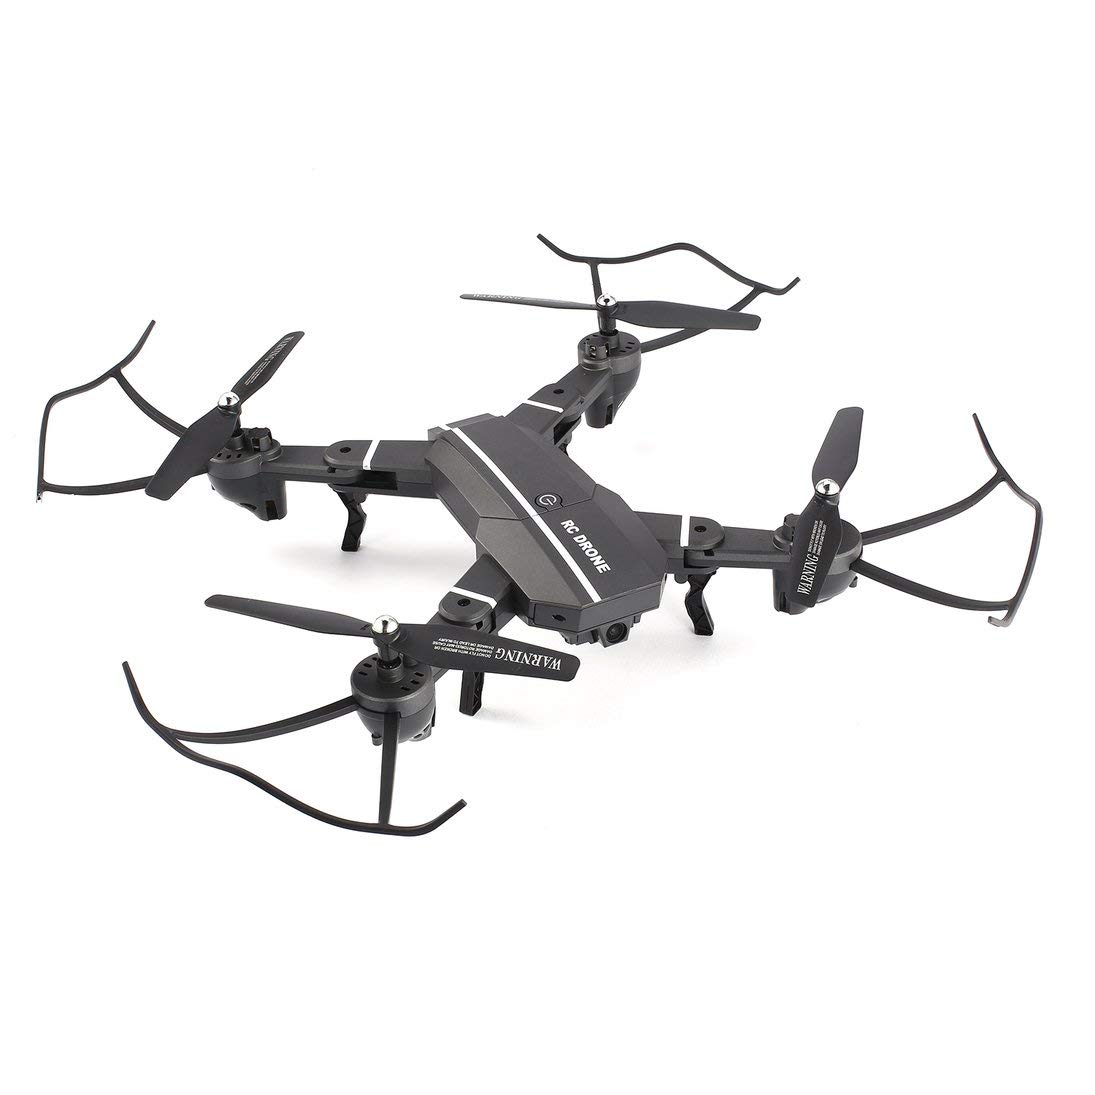 ToGames-ES 8807W Foldable RC Quadcopter with 720P WiFi Camera Altitude Hold Headless Mode